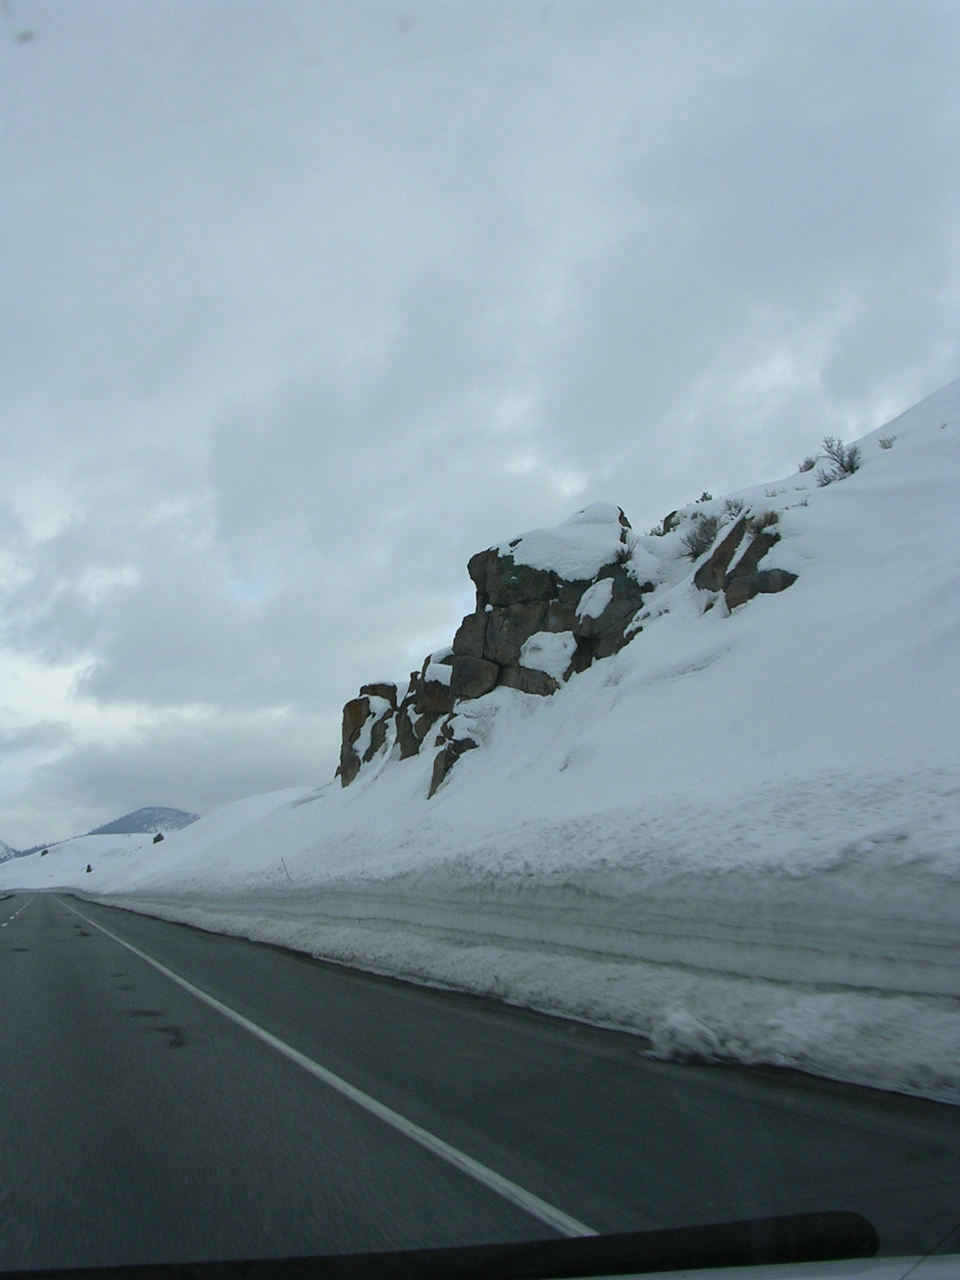 Snowy roadside on Hwy. 395